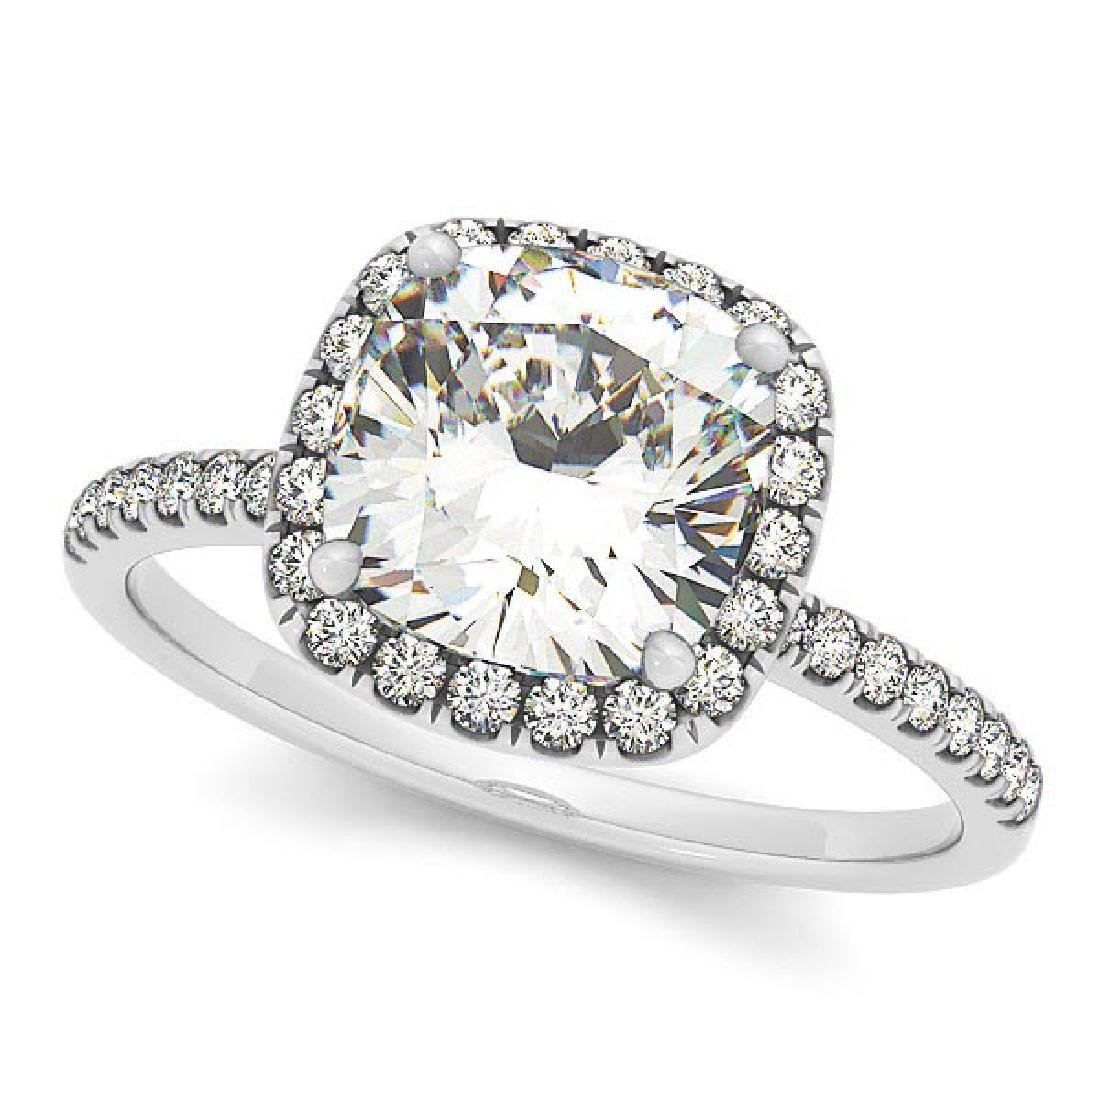 Cushion Diamond Halo Engagement Ring French Pave 14k W.